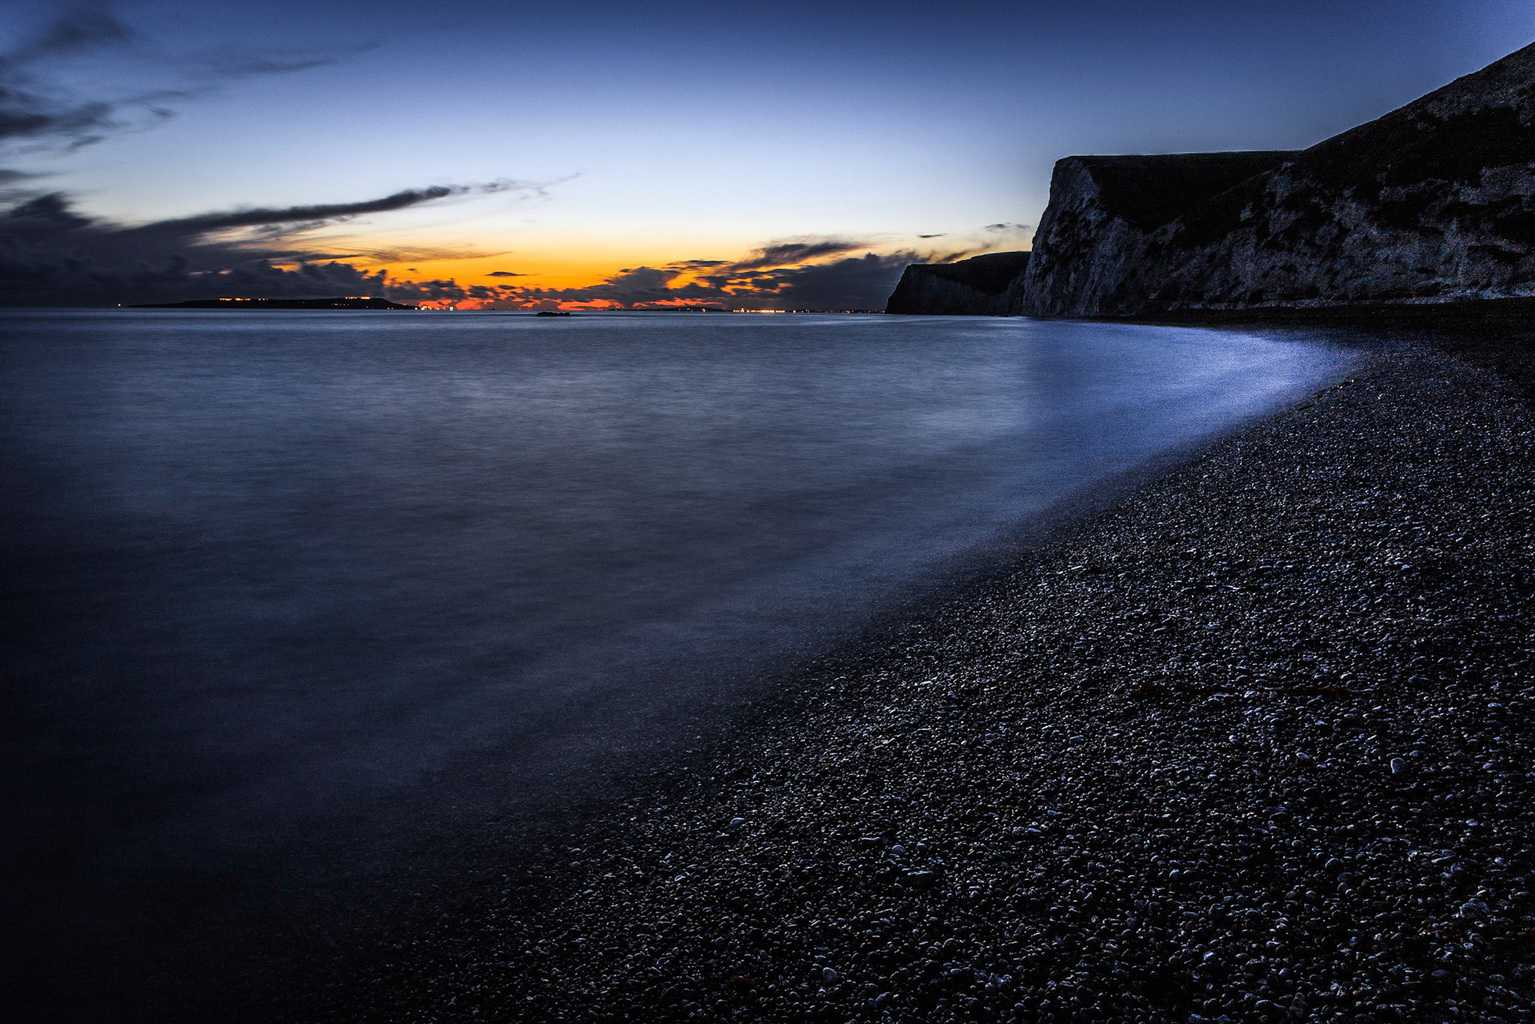 Picture of the Jurassic Coast in Dorset by Rick McEvoy